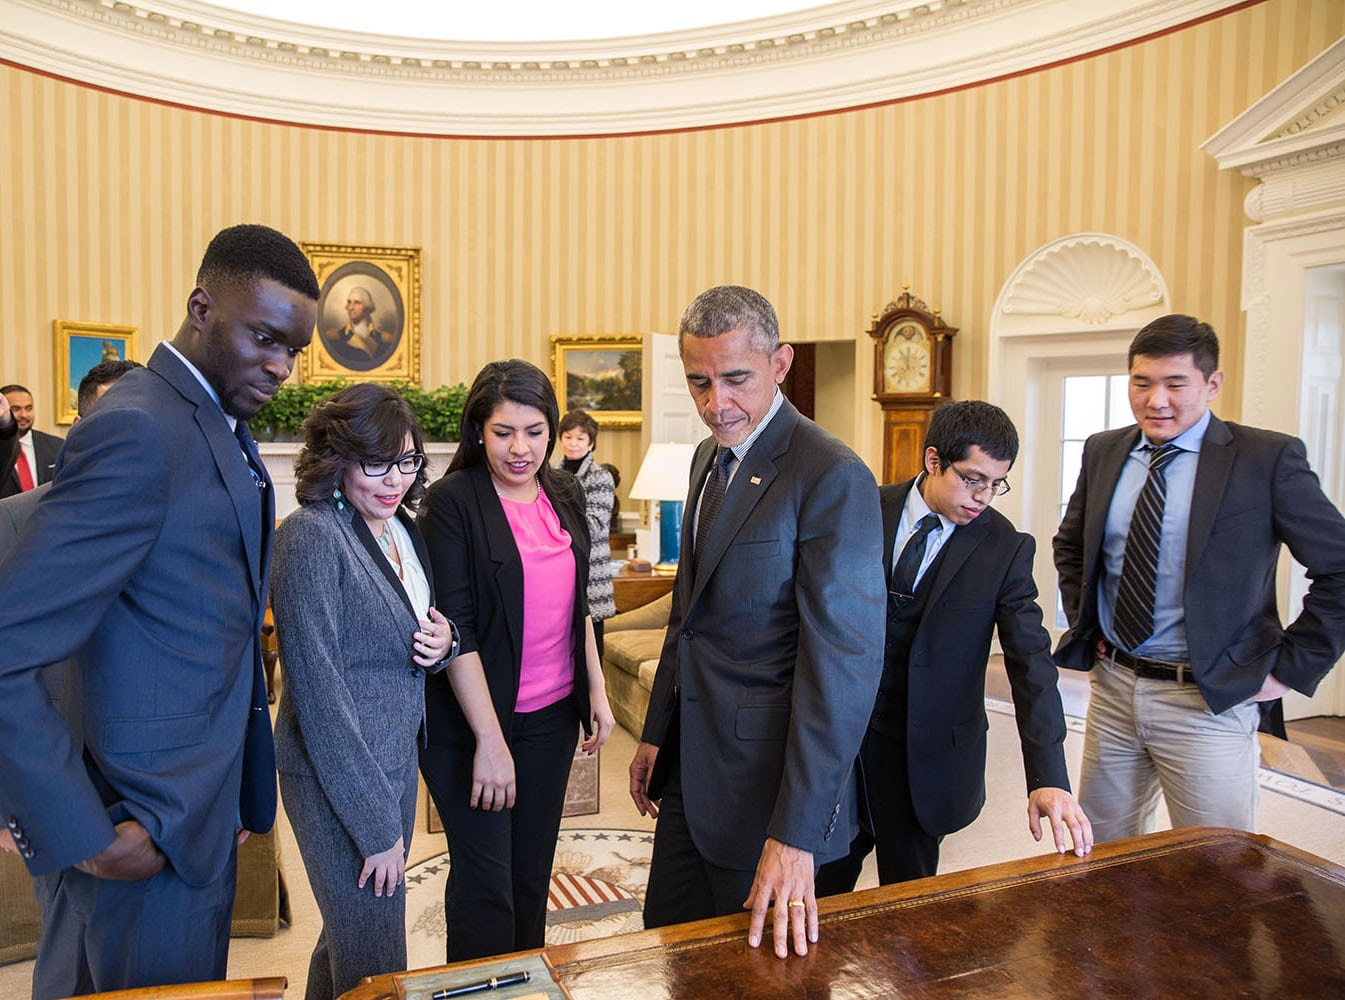 Image President Barack Obama meets with Dreamers, Feb. 4, 2015. (White House Photo by Pete Souza)